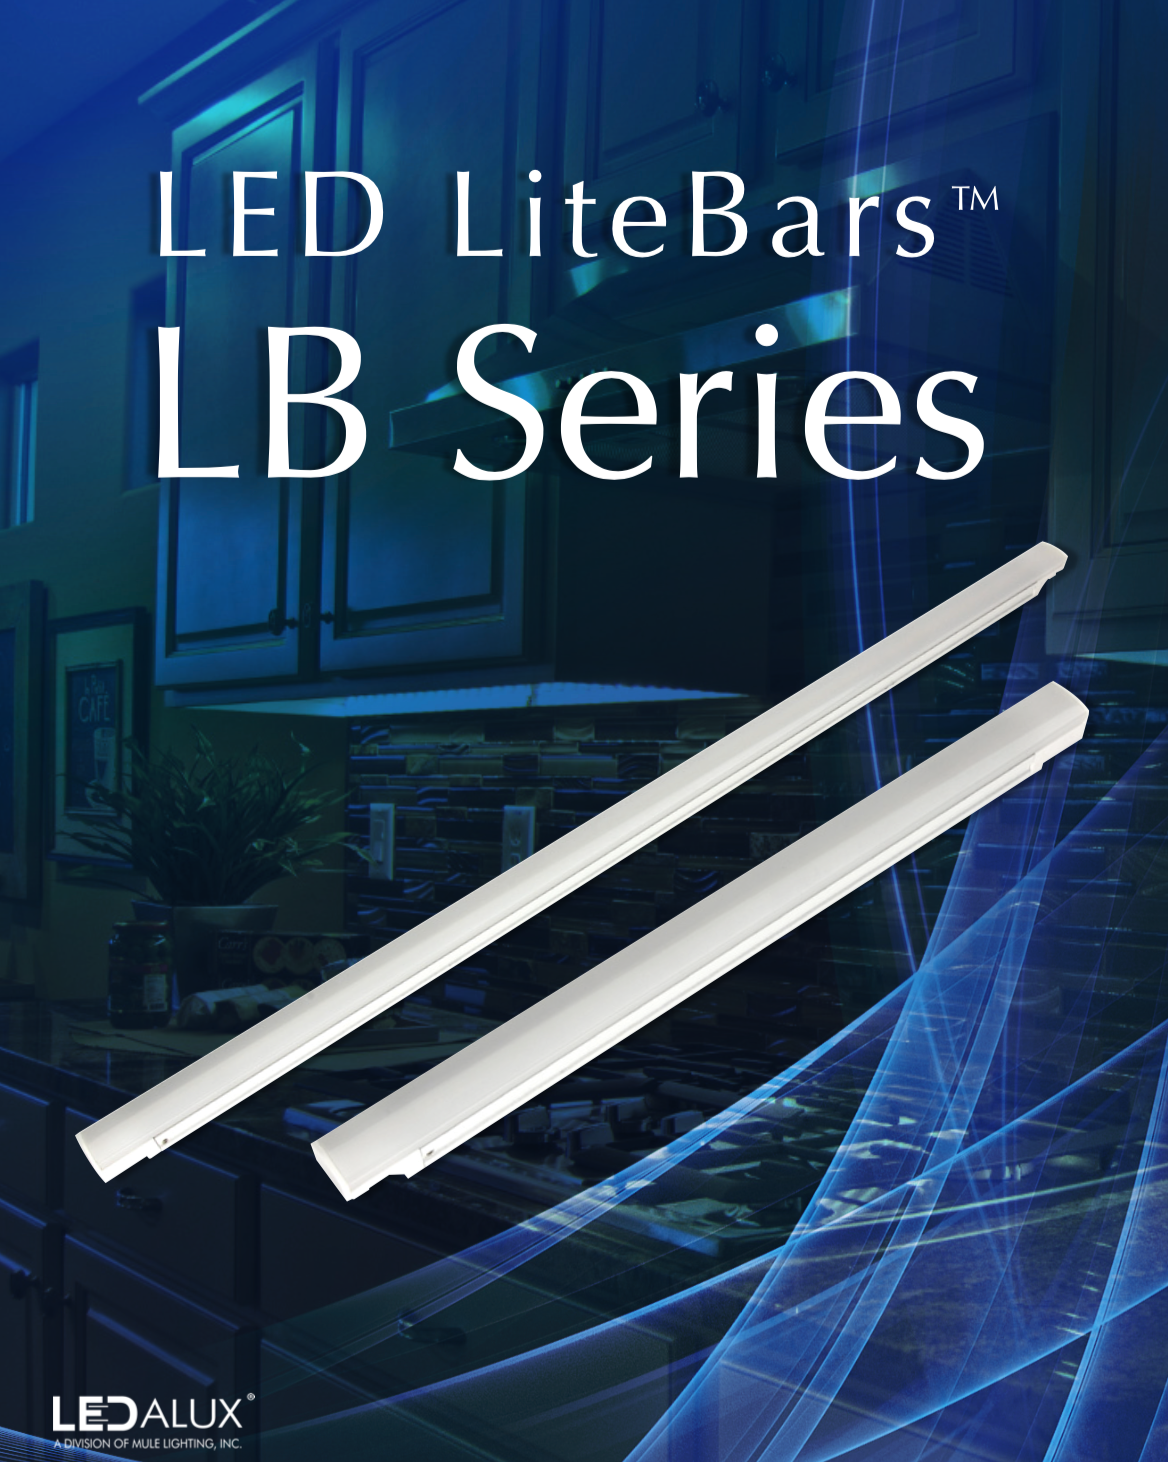 LEDalux LED LiteBars LB Series Literature